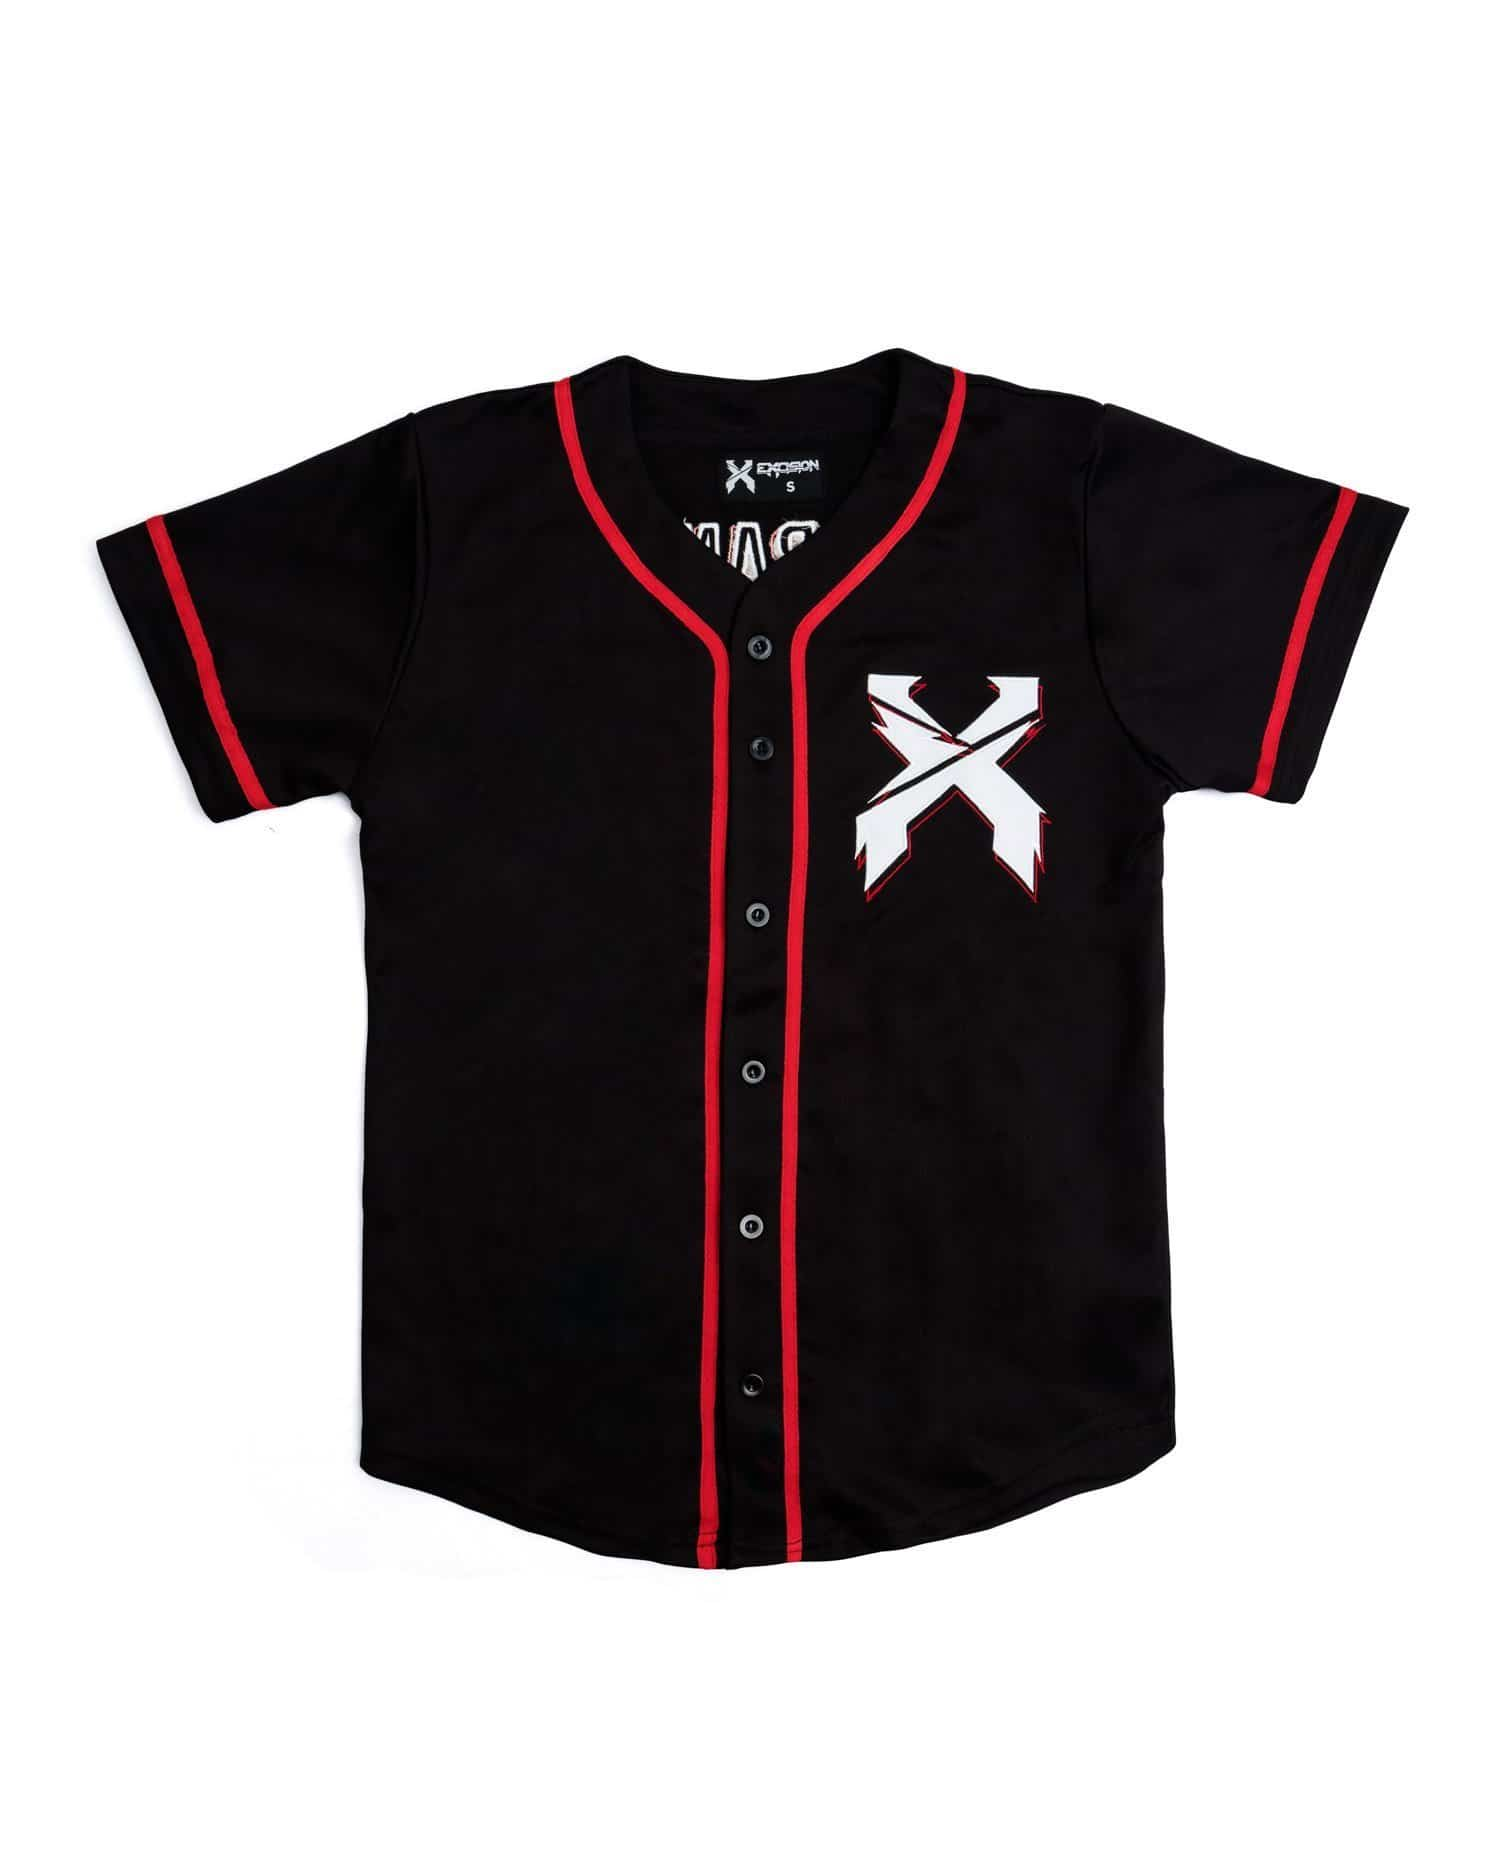 superior quality 359e0 d2d92 Excision Baseball Jersey - Black/Red